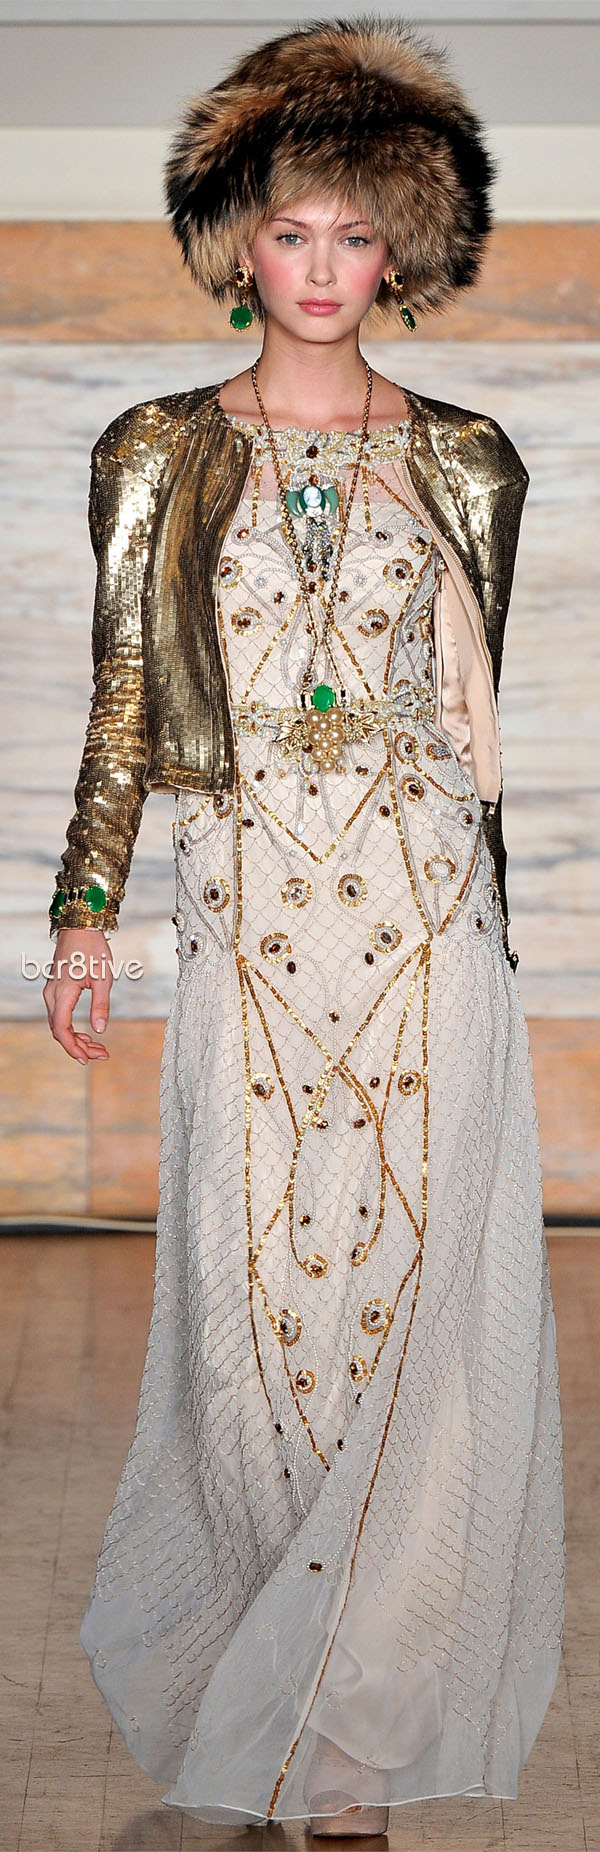 Temperley London Fall Winter 2012-13 Collection_036